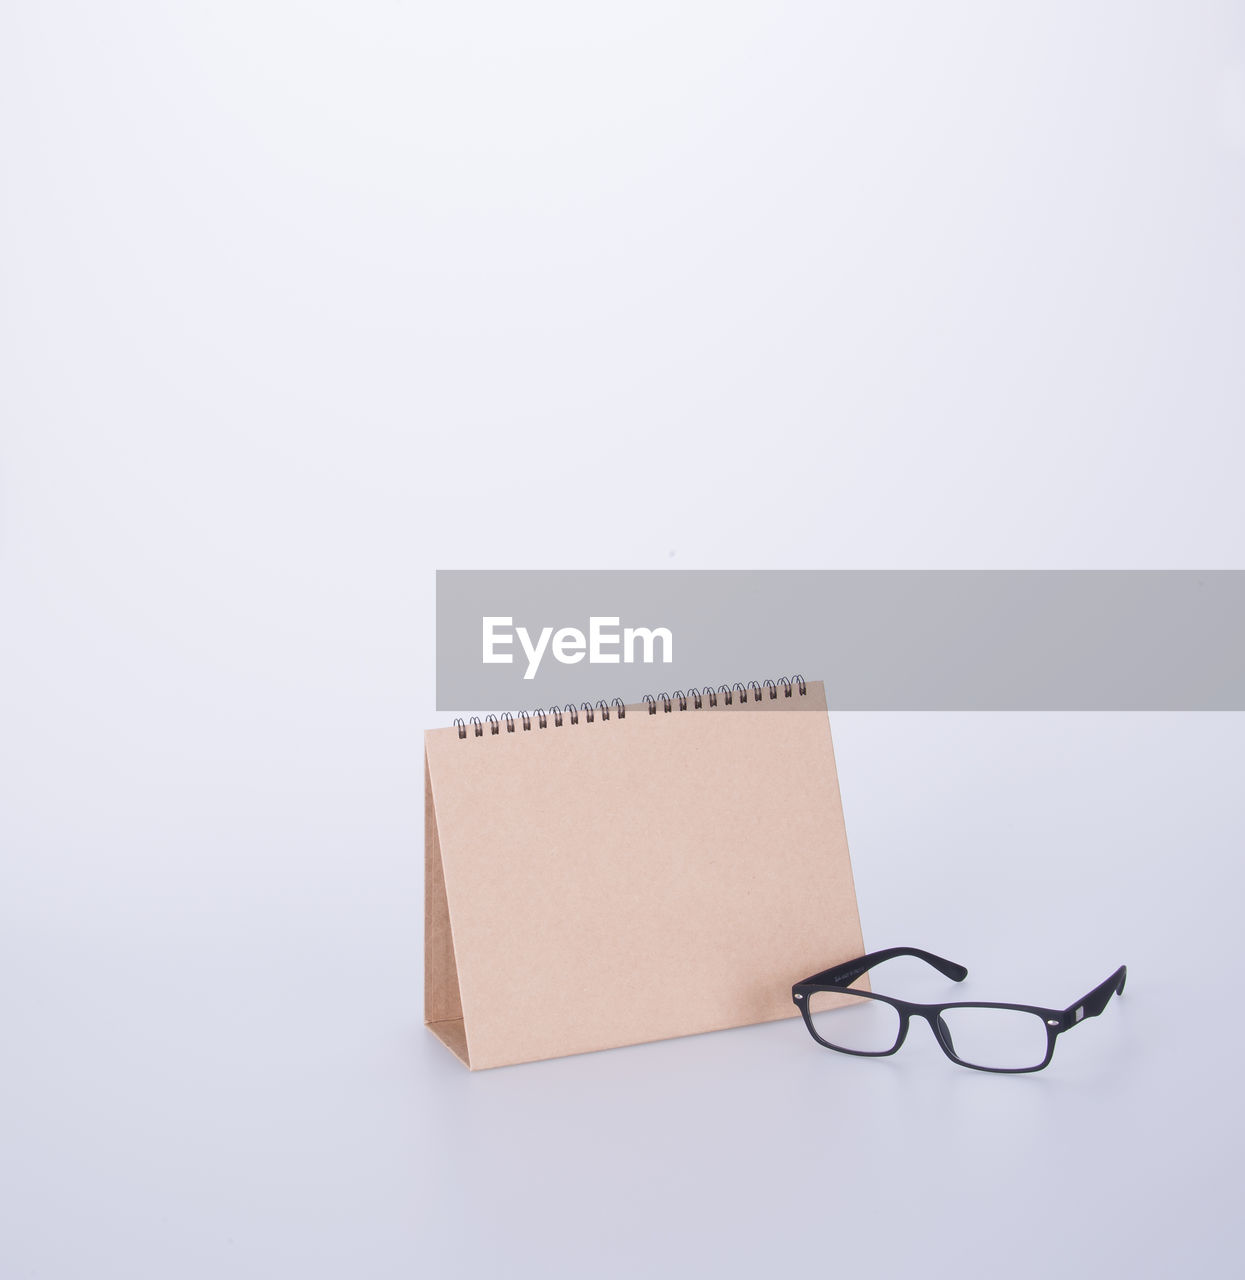 copy space, studio shot, white background, indoors, still life, no people, eyeglasses, close-up, paper, cut out, glasses, communication, cardboard, single object, two objects, technology, connection, note pad, creativity, blank